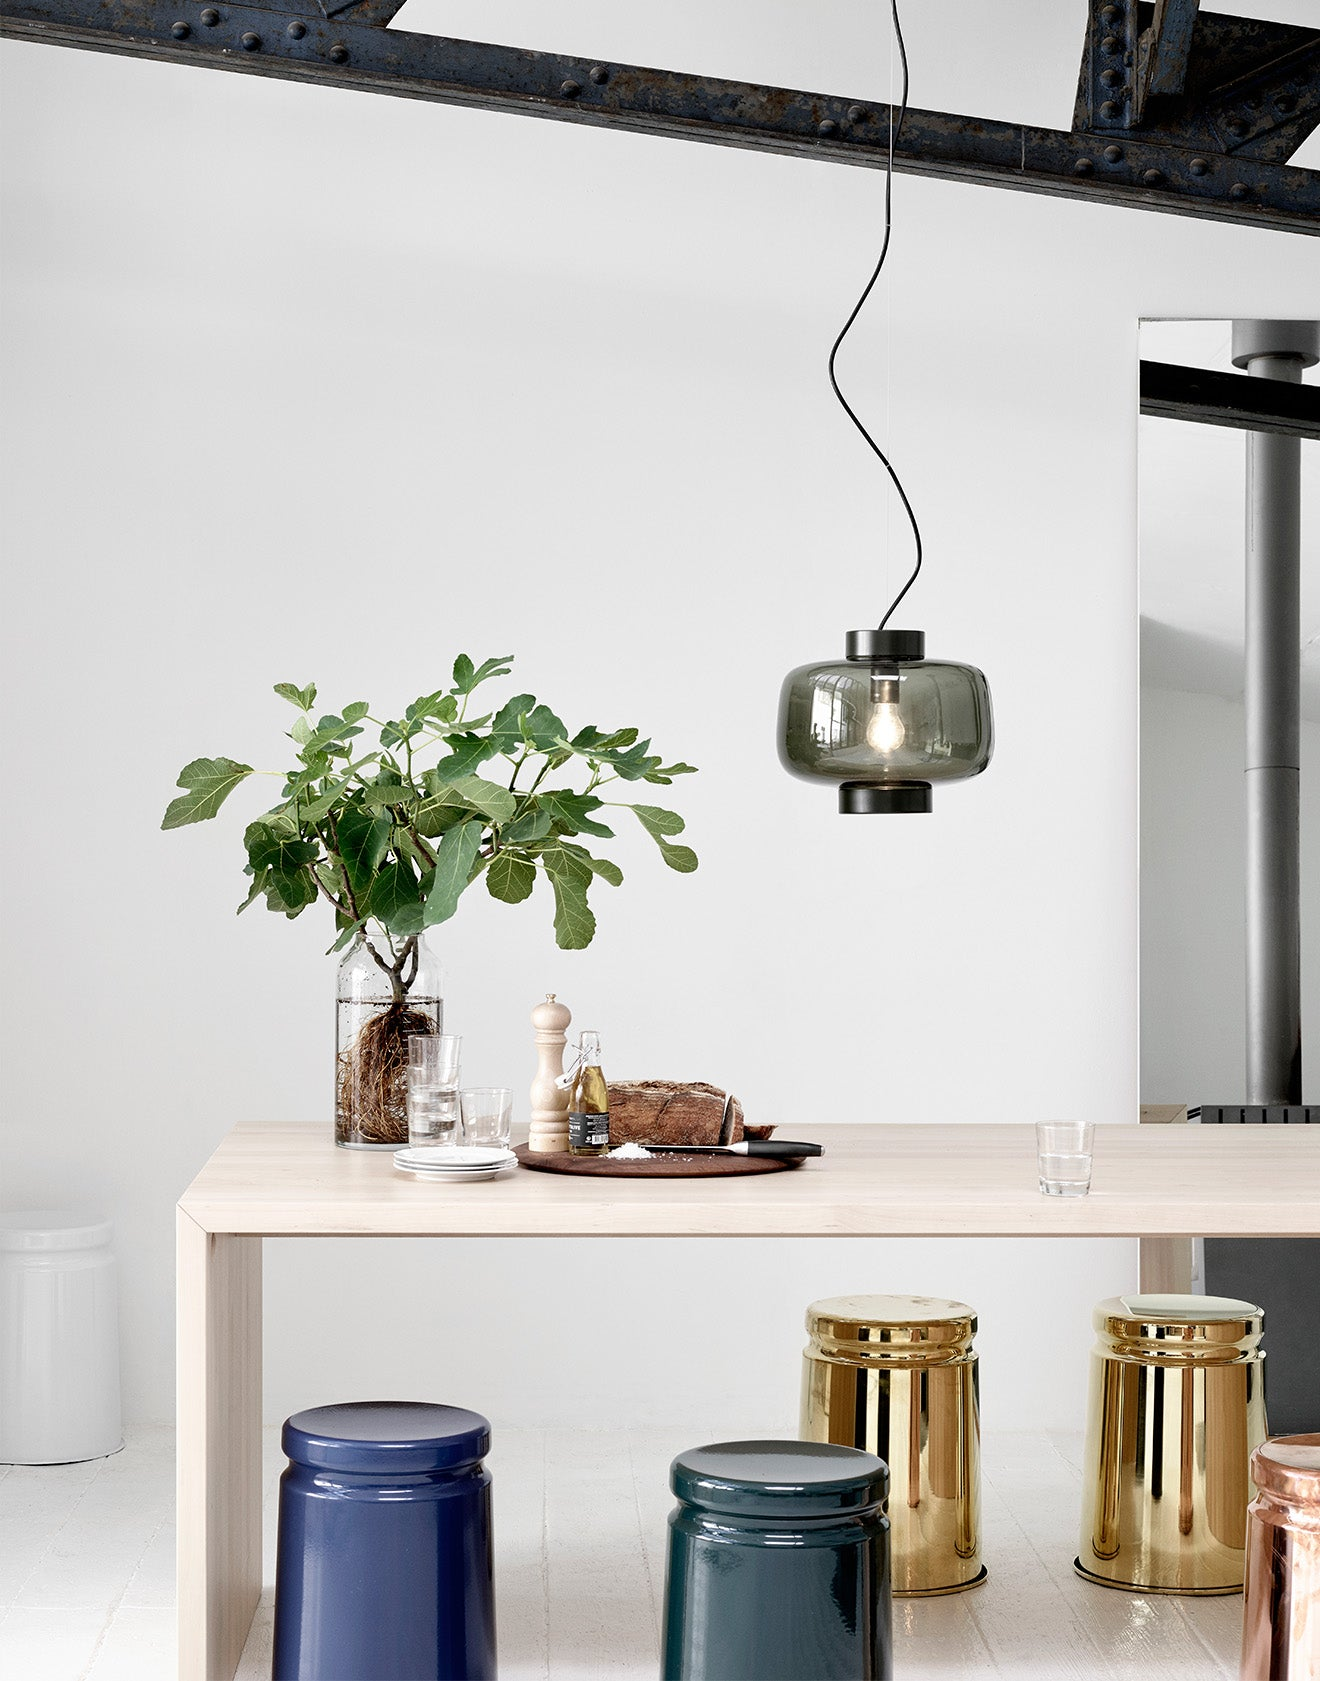 Hem furniture designs dusk pendant lighting and steel stools in Scandinavian dining space